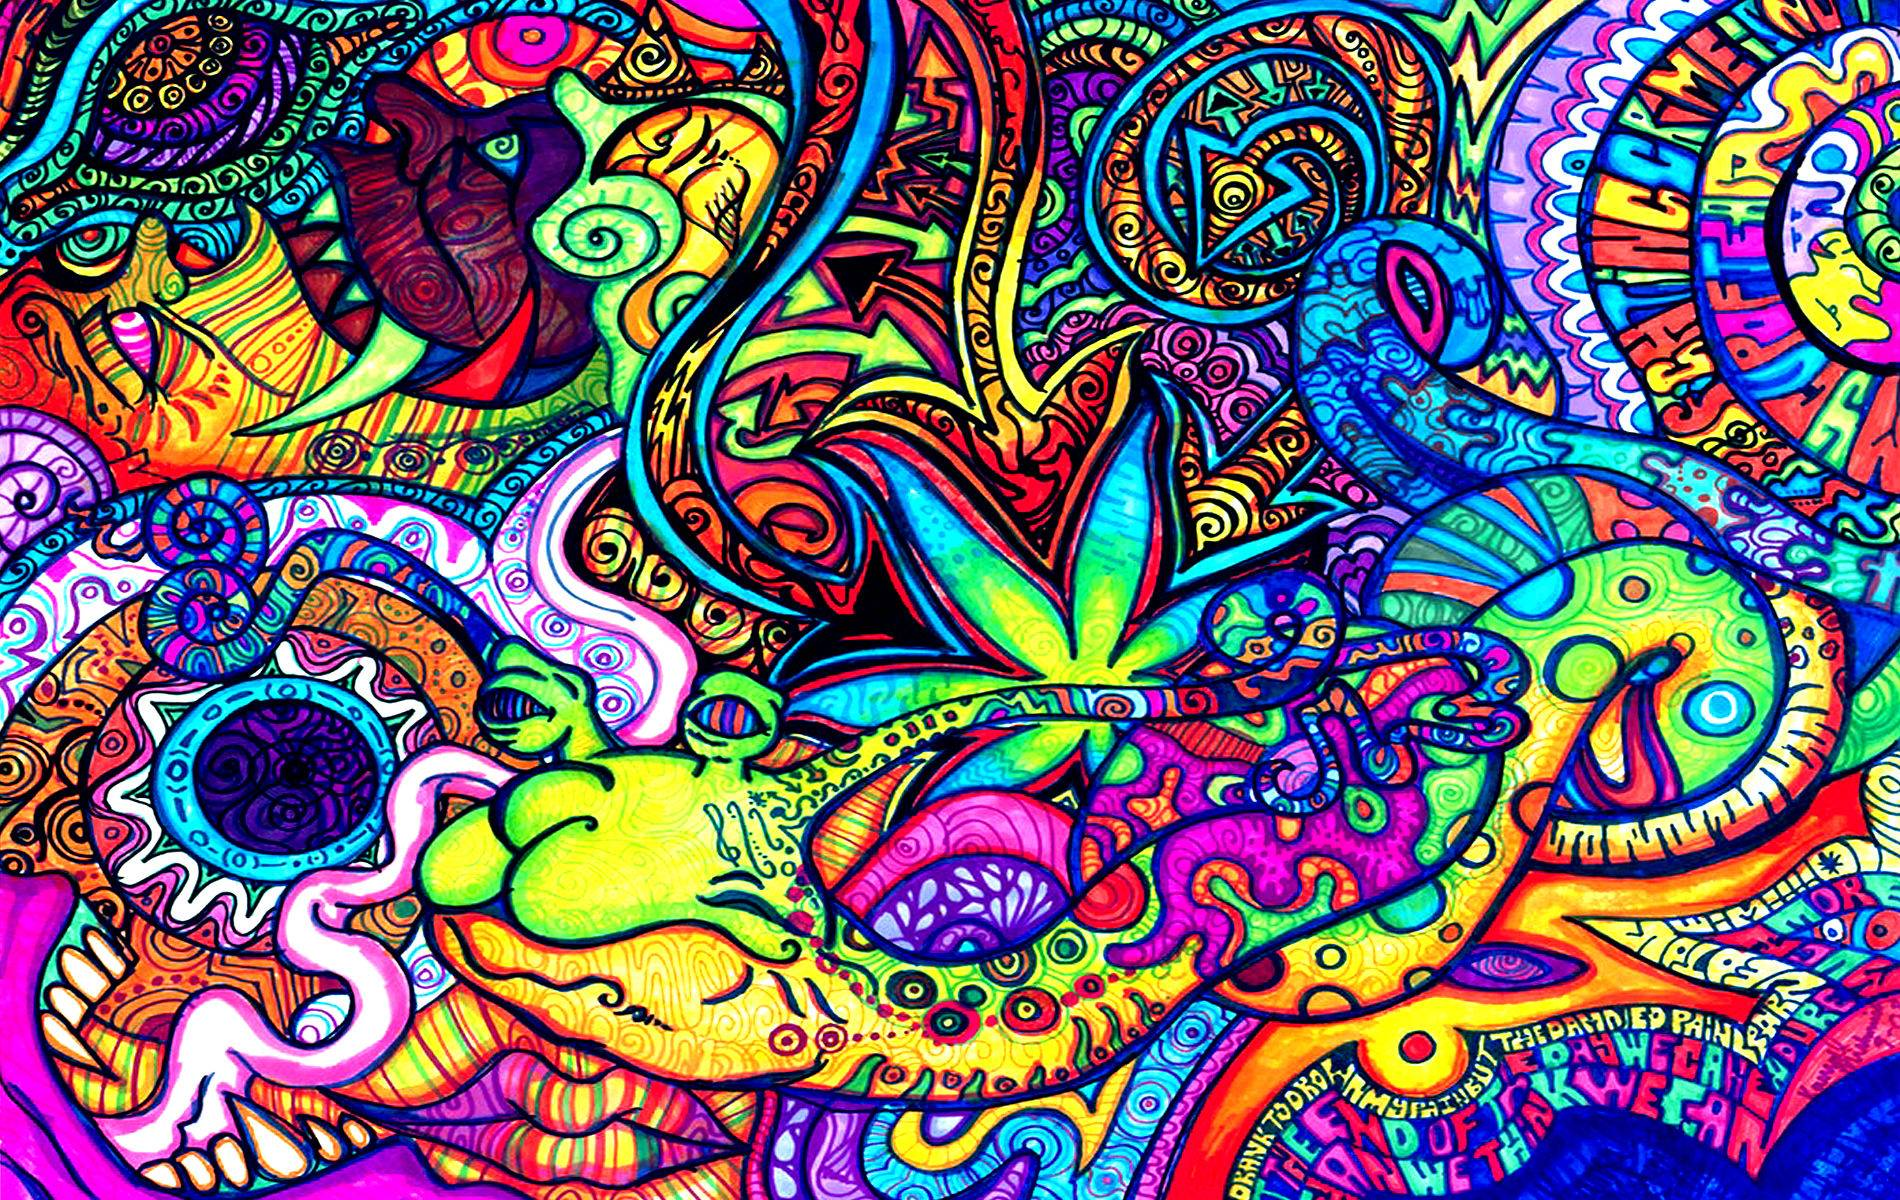 Psychedelic Wallpaper For Twitter